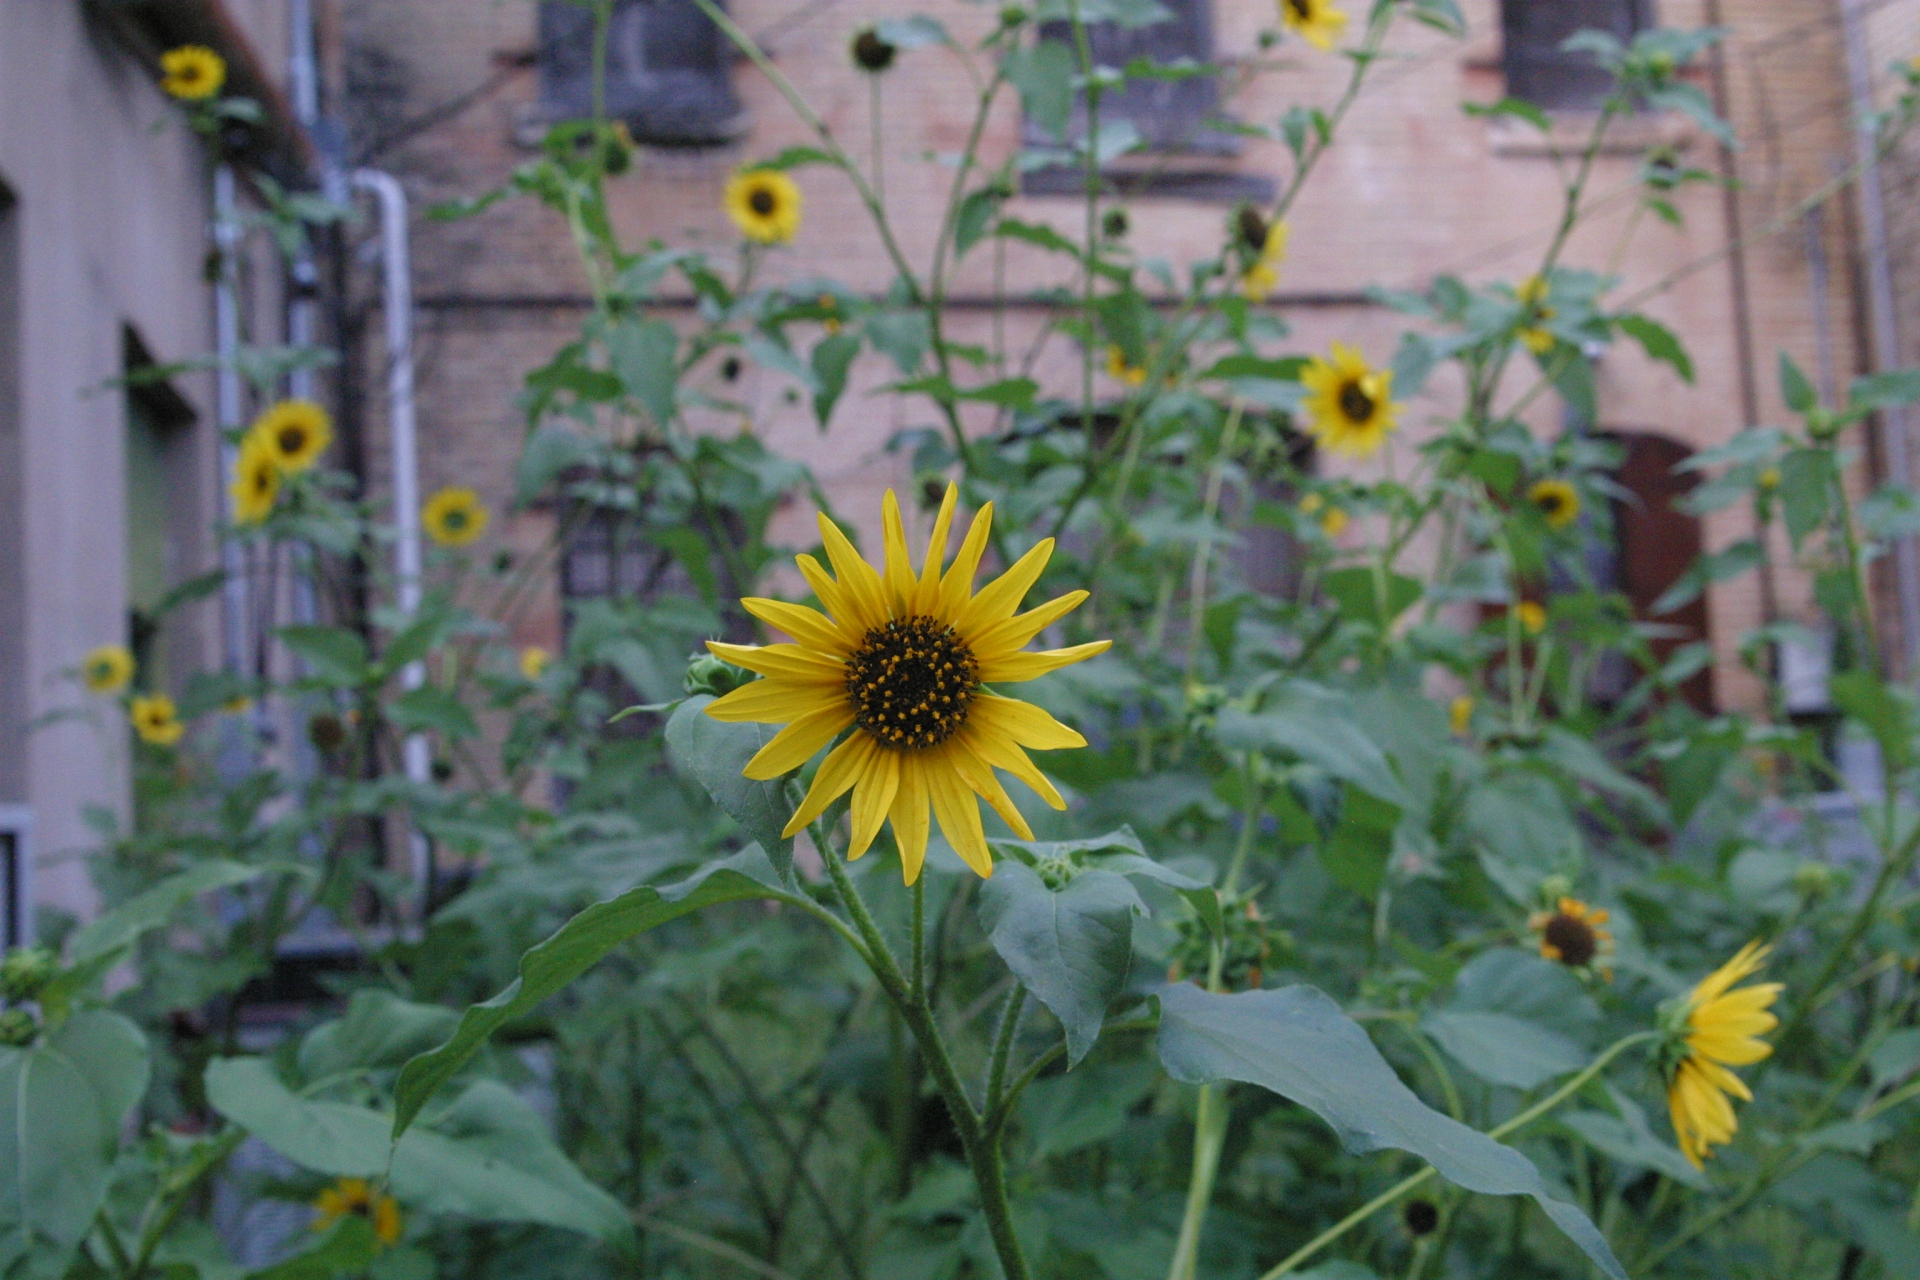 Patch of Sunflowers from seguin, representing spring